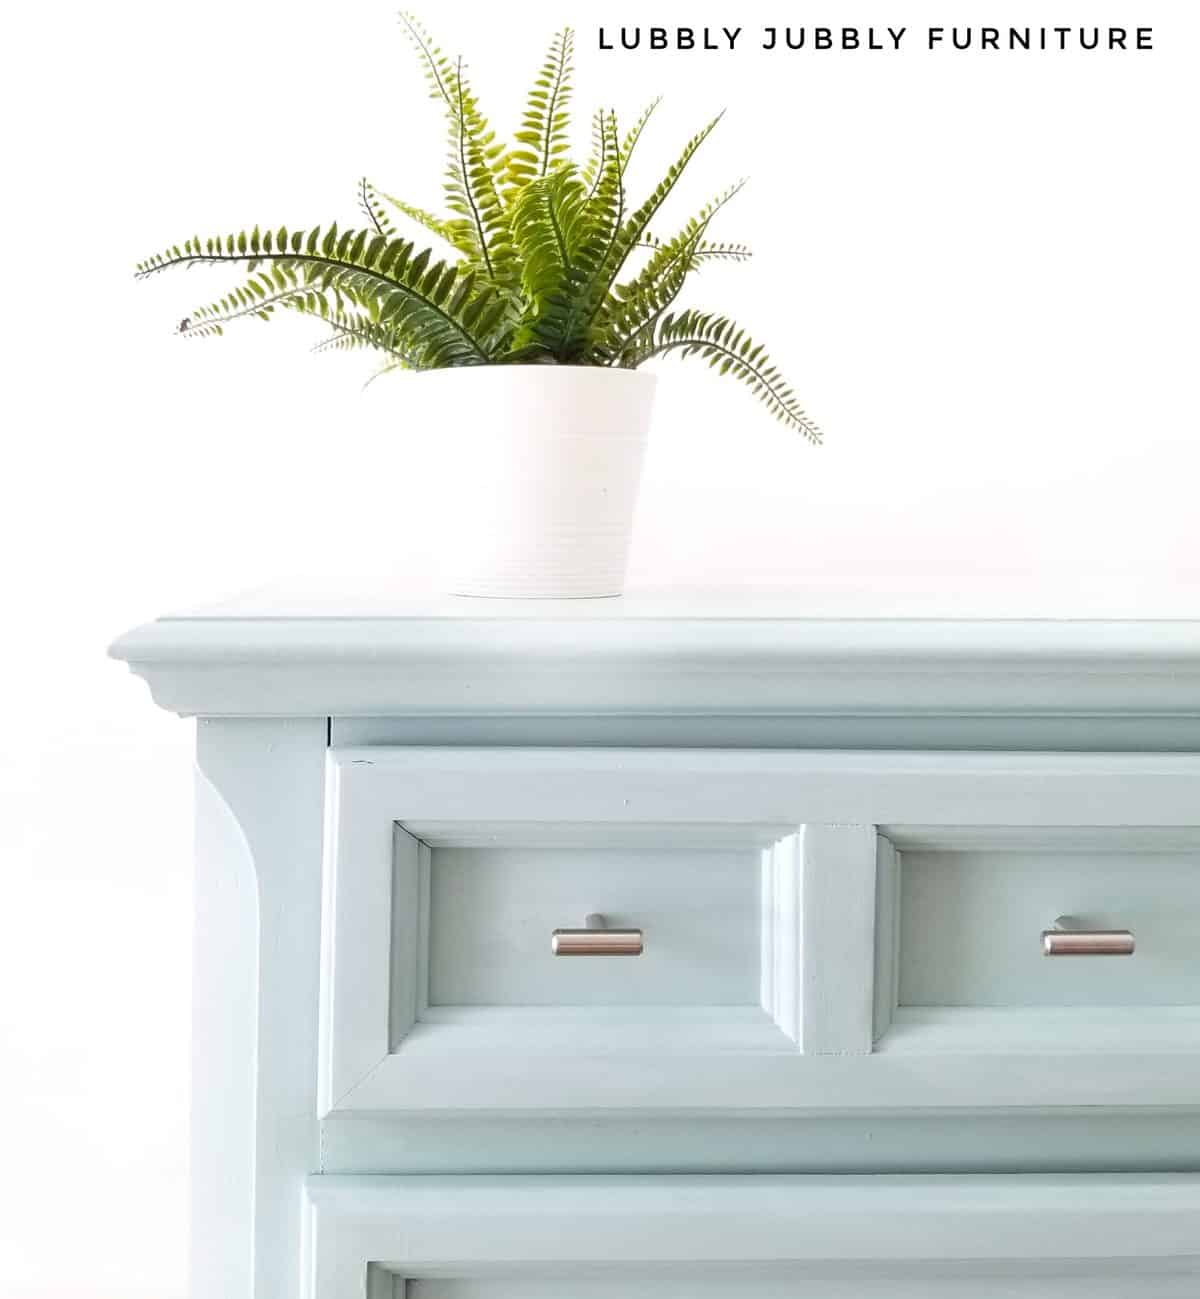 Fancy Frock pastel blue nightstand painted with chalk style furniture paint